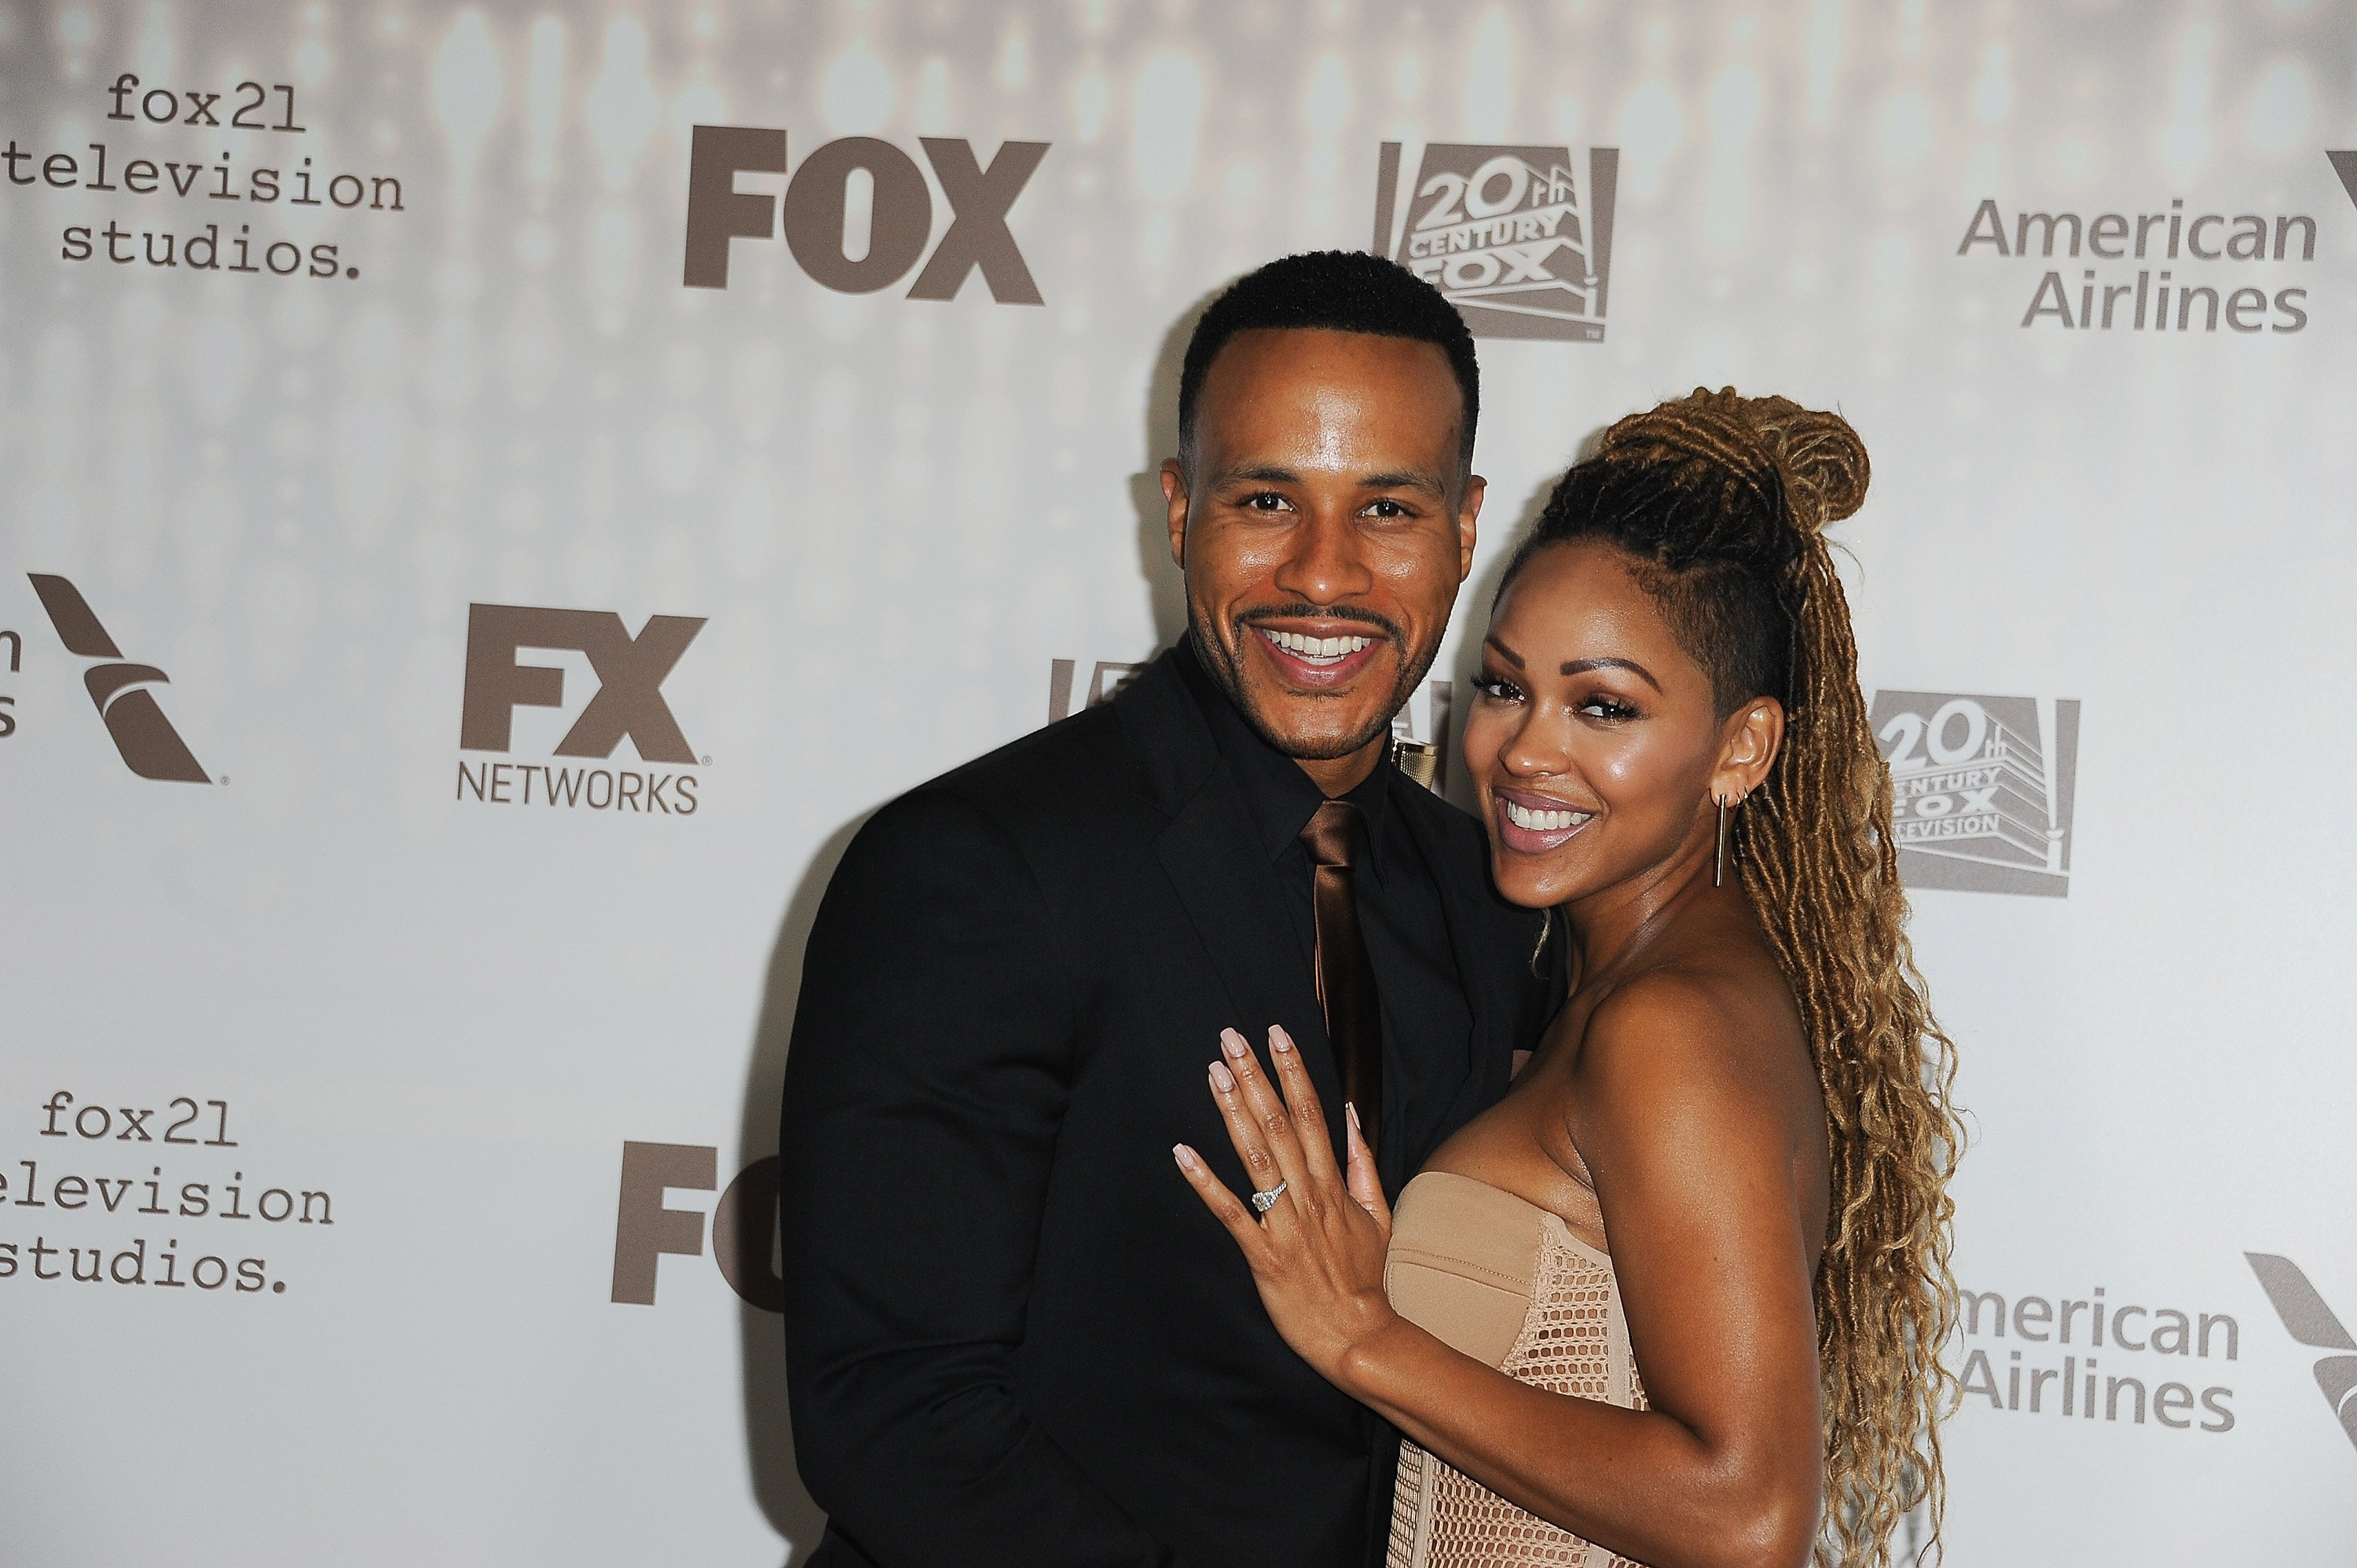 DeVon Franklin and Meagan Good at the 2017 Golden Globe Awards after-party.| Photo: Getty Images